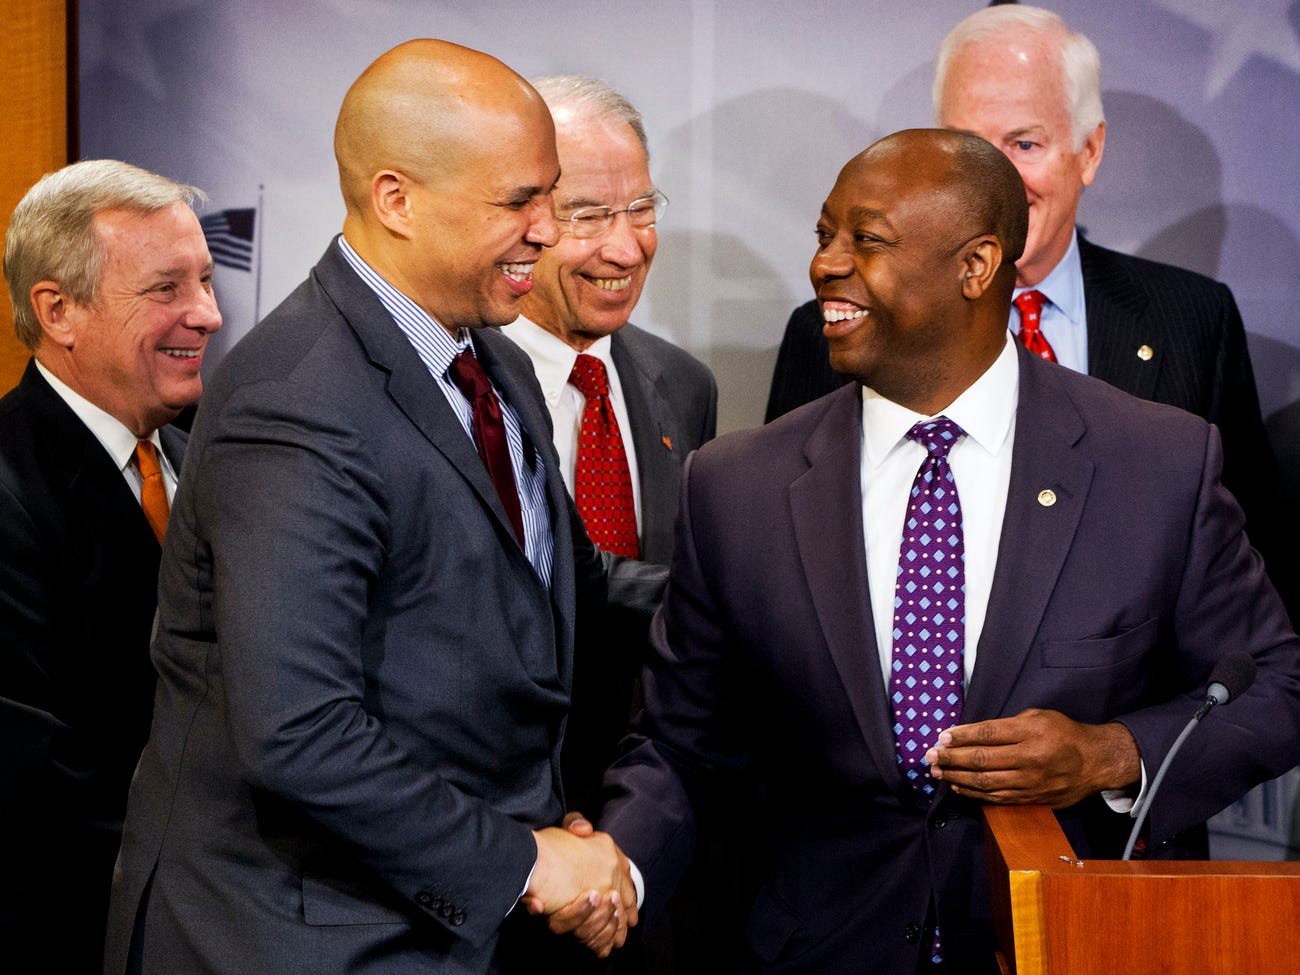 Sen. Tim Scott, right, shakes hands with Sen. Cory Booker during a news conference on Capitol Hill on Oct. 1, 2015.